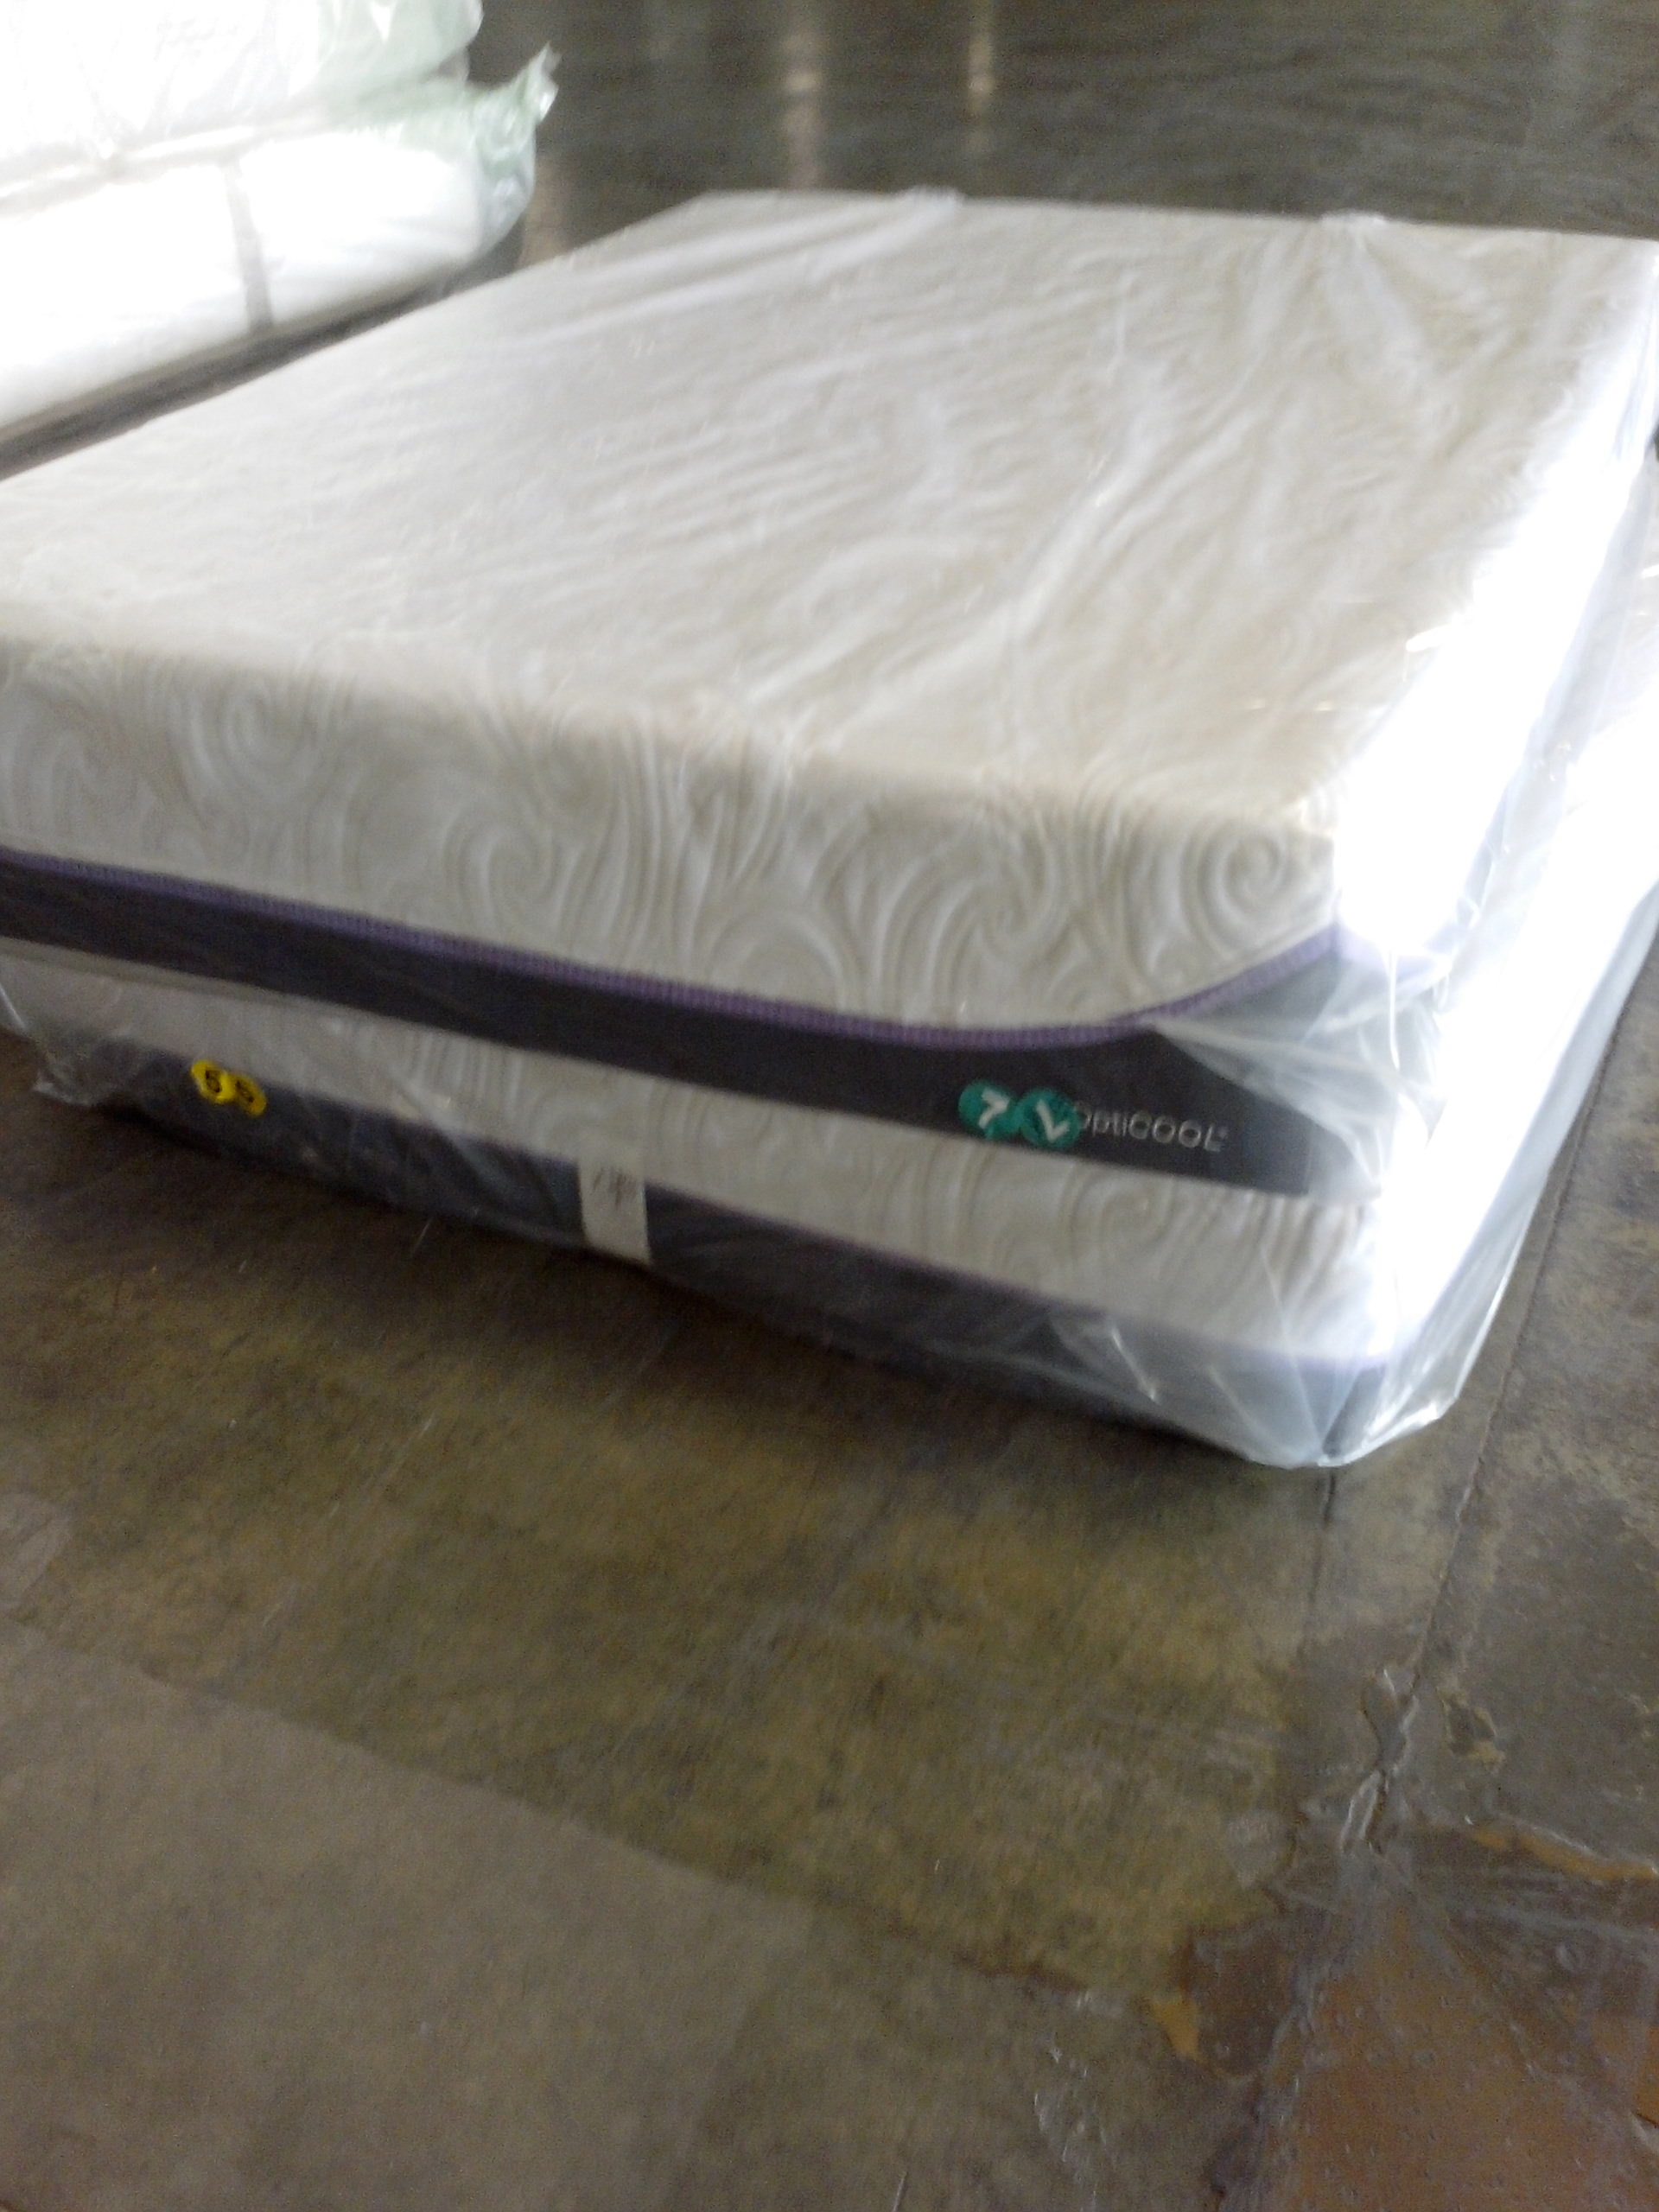 Mattress Deals image 71